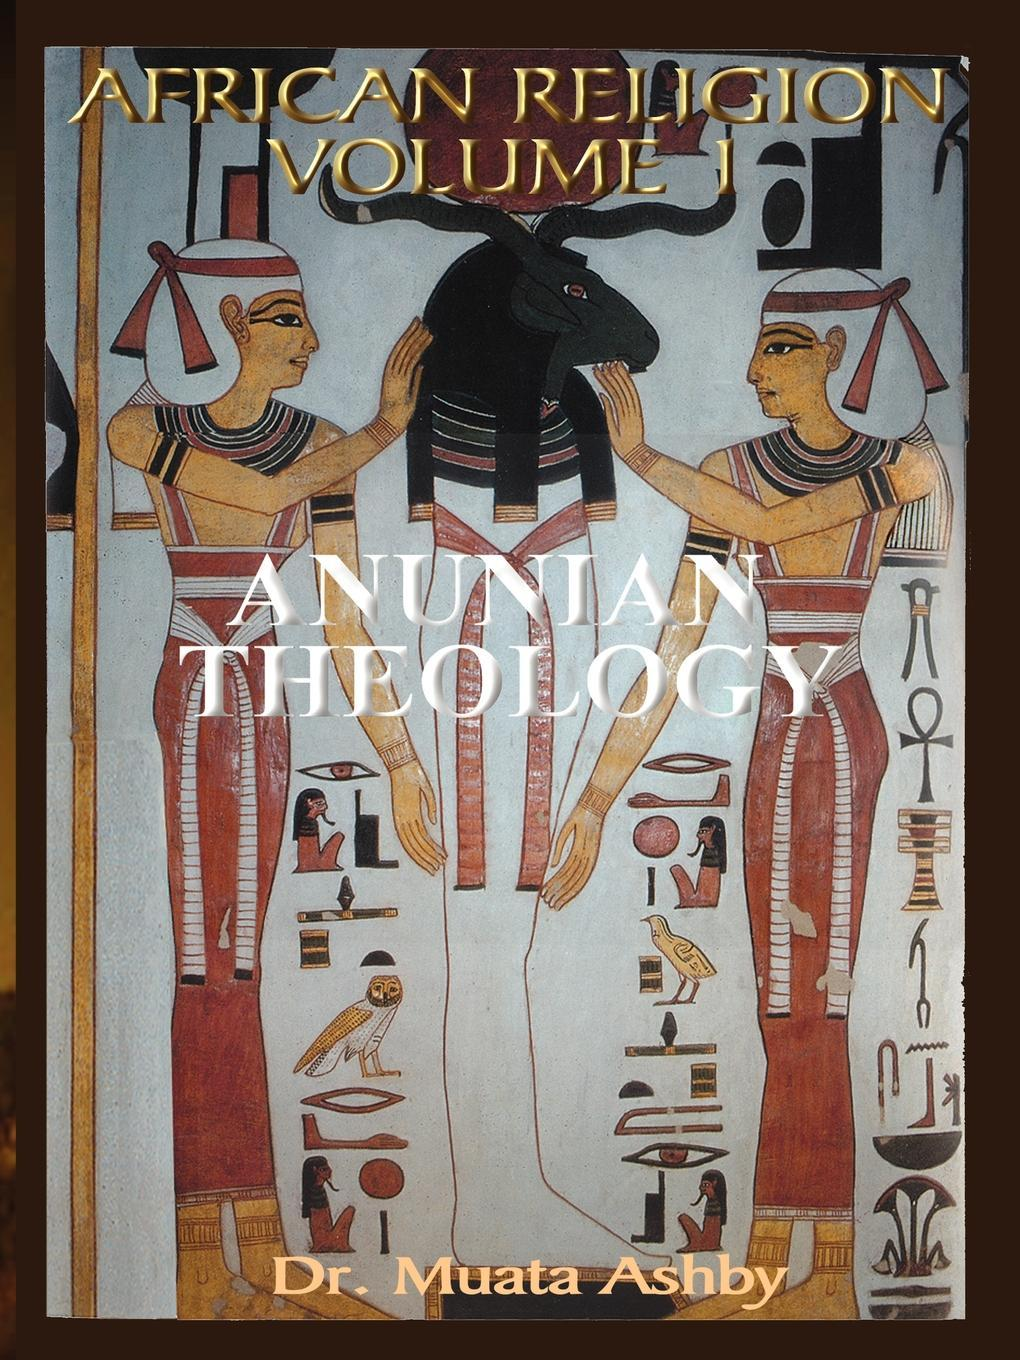 African Religion VOL. 1- ANUNIAN THEOLOGY THE MYSTERIES OF RA The Philosophy of Anu and The Mystical Teachings of The Ancient Egyptian  Creation Myth EB9781937016029